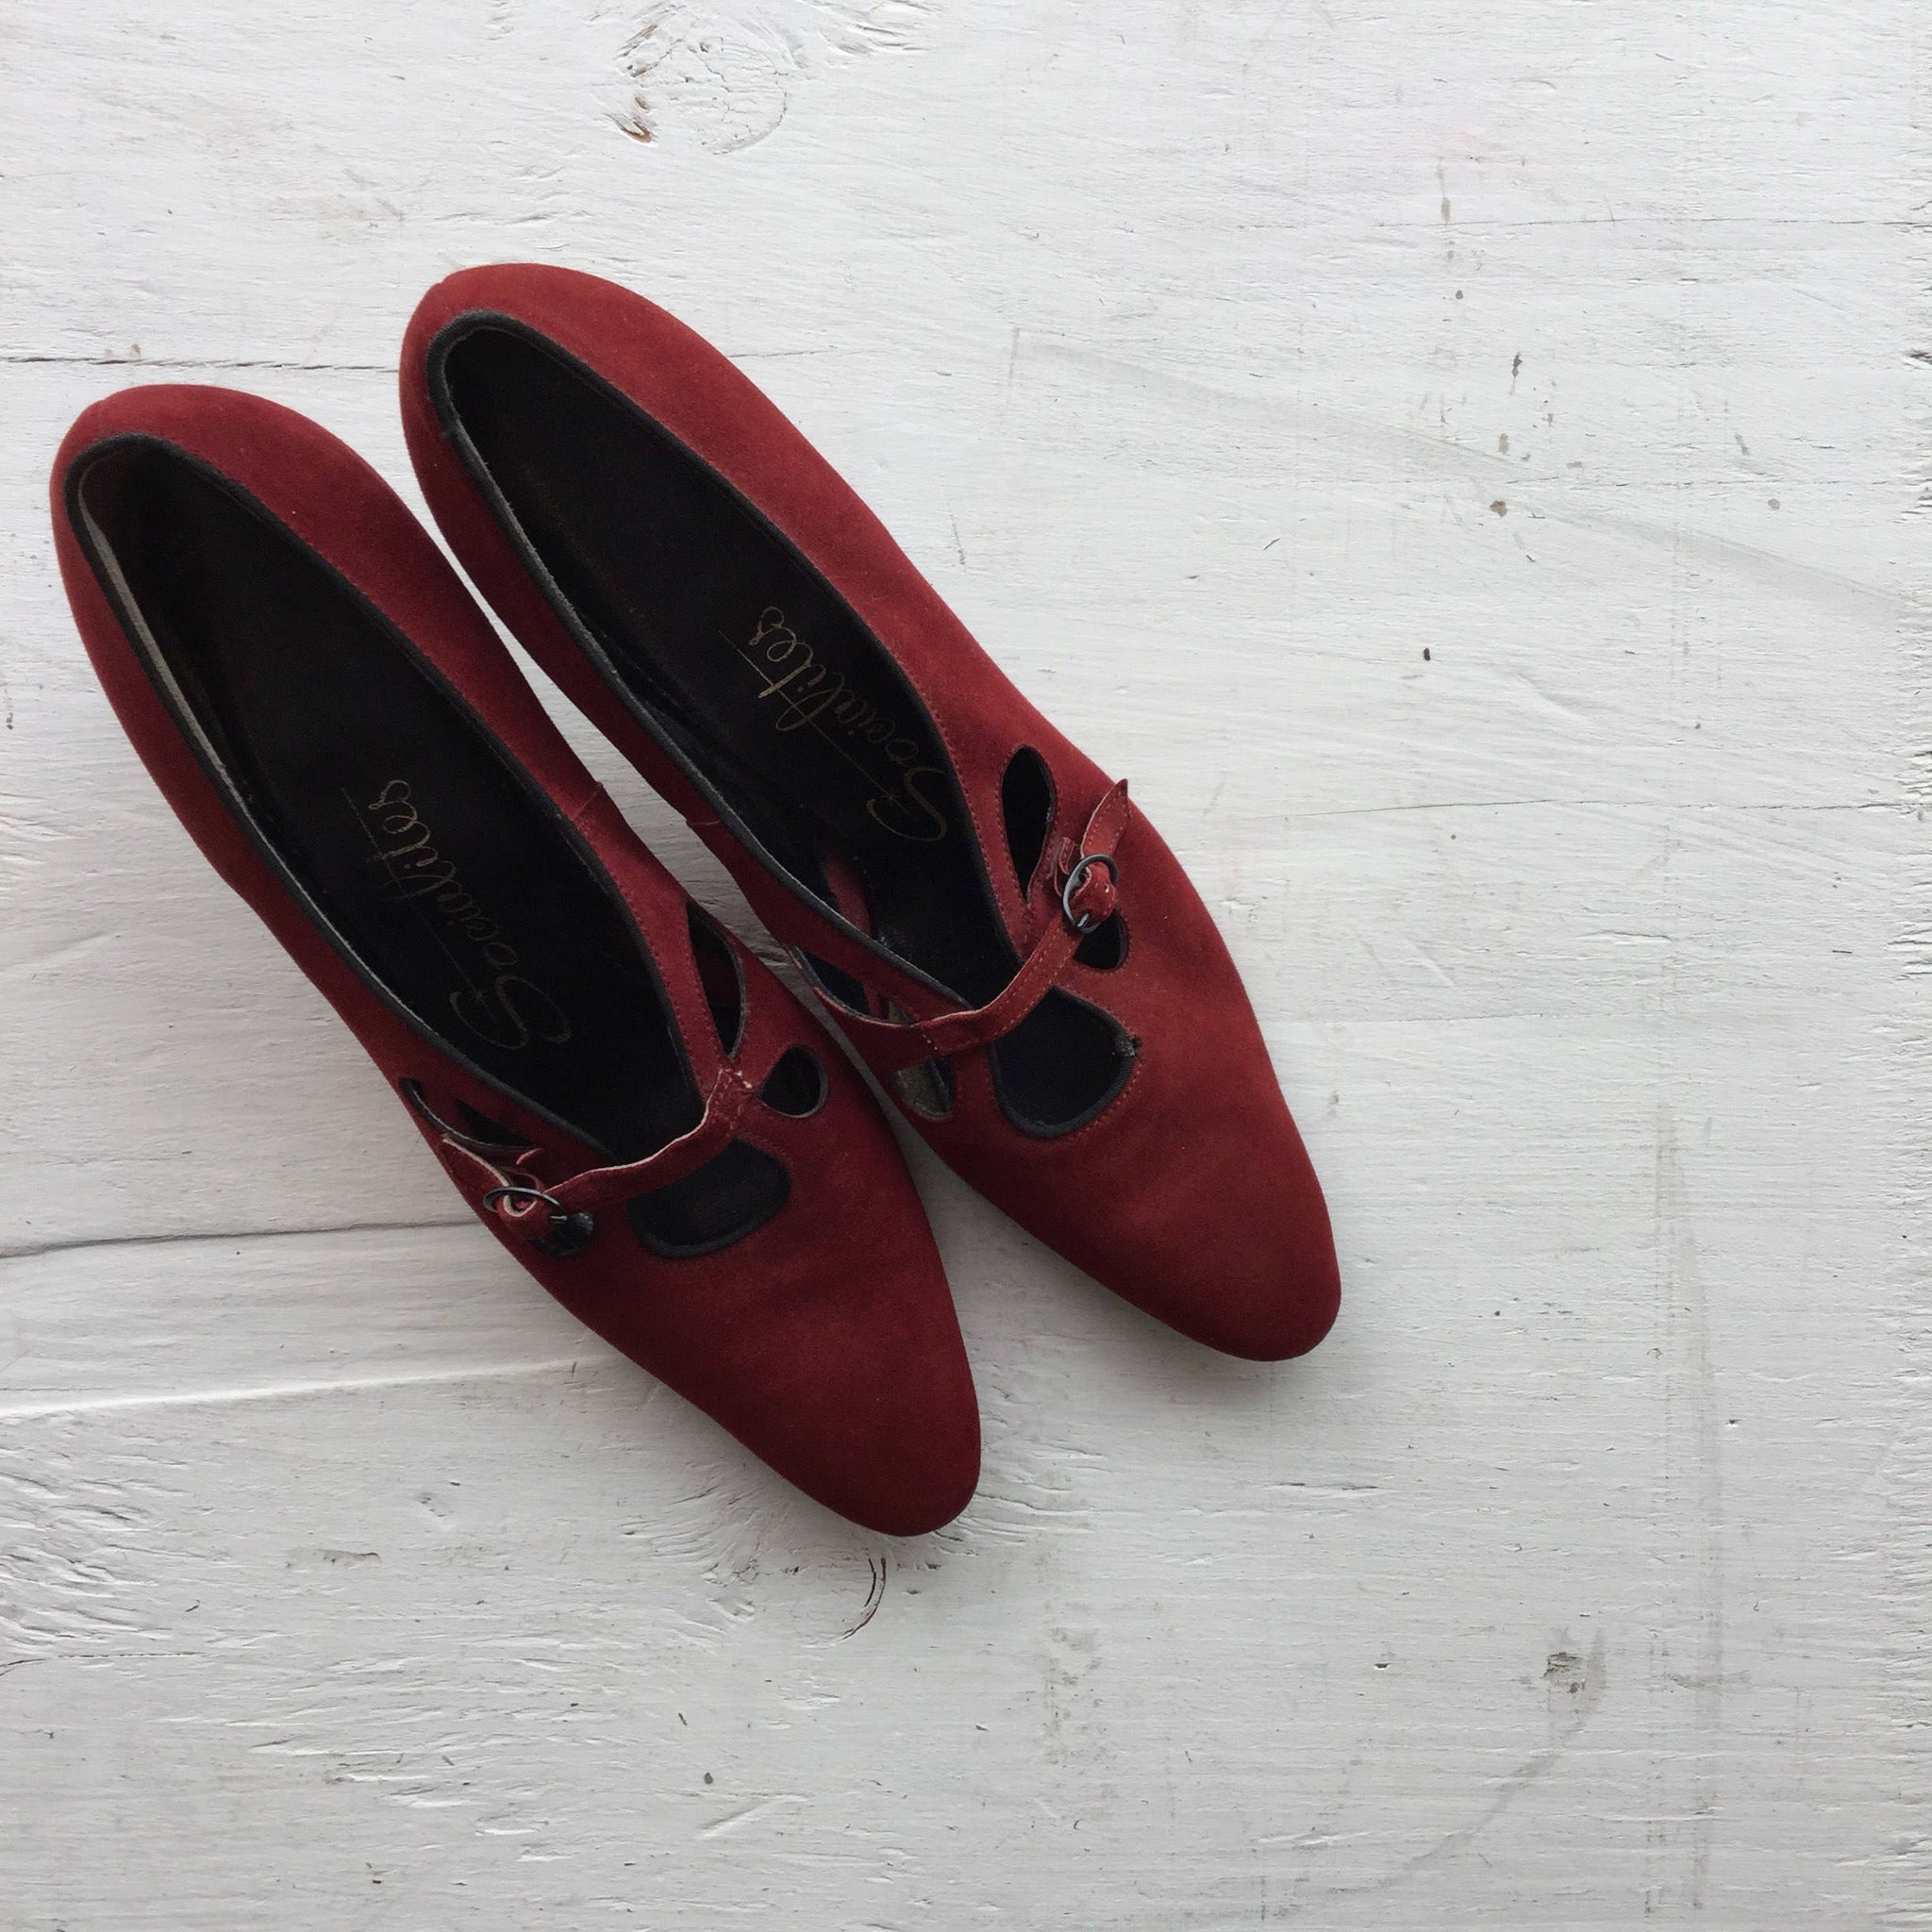 Socialites 1960s Suede Pumps | US 8